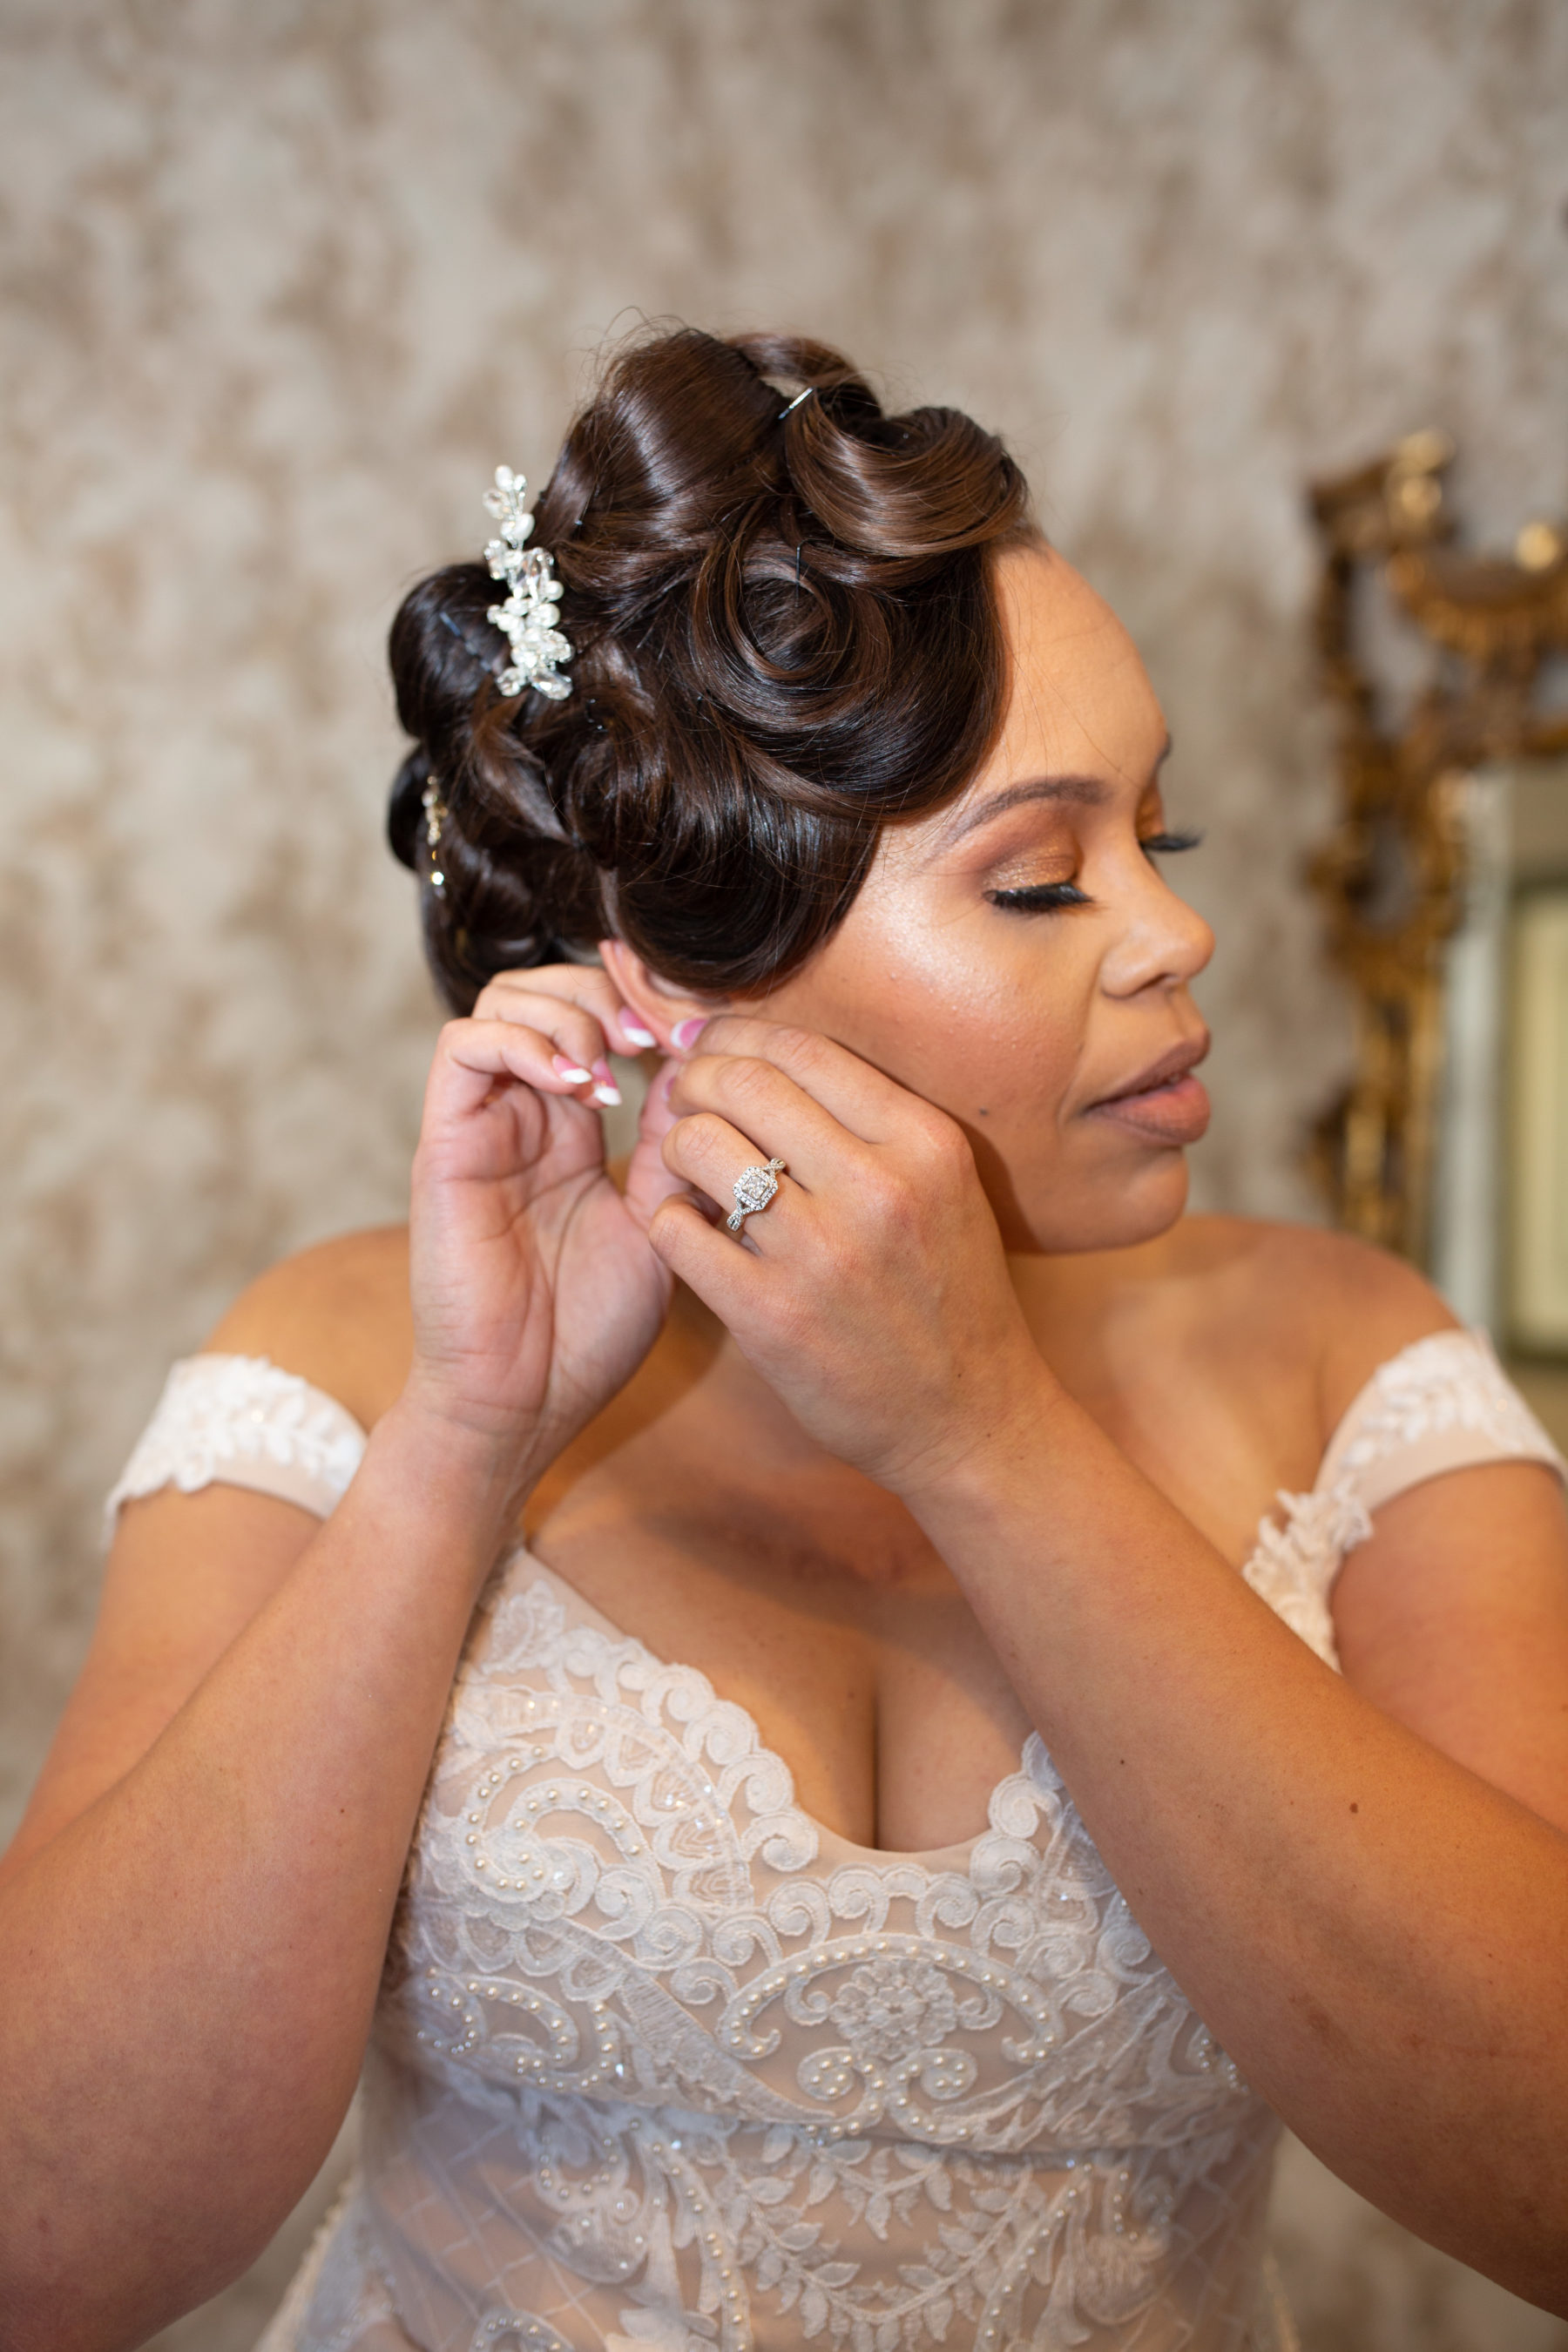 Bridal hair and makeup: Luxurious Stone Rivers Country Club Wedding featured on Nashville Bride Guide